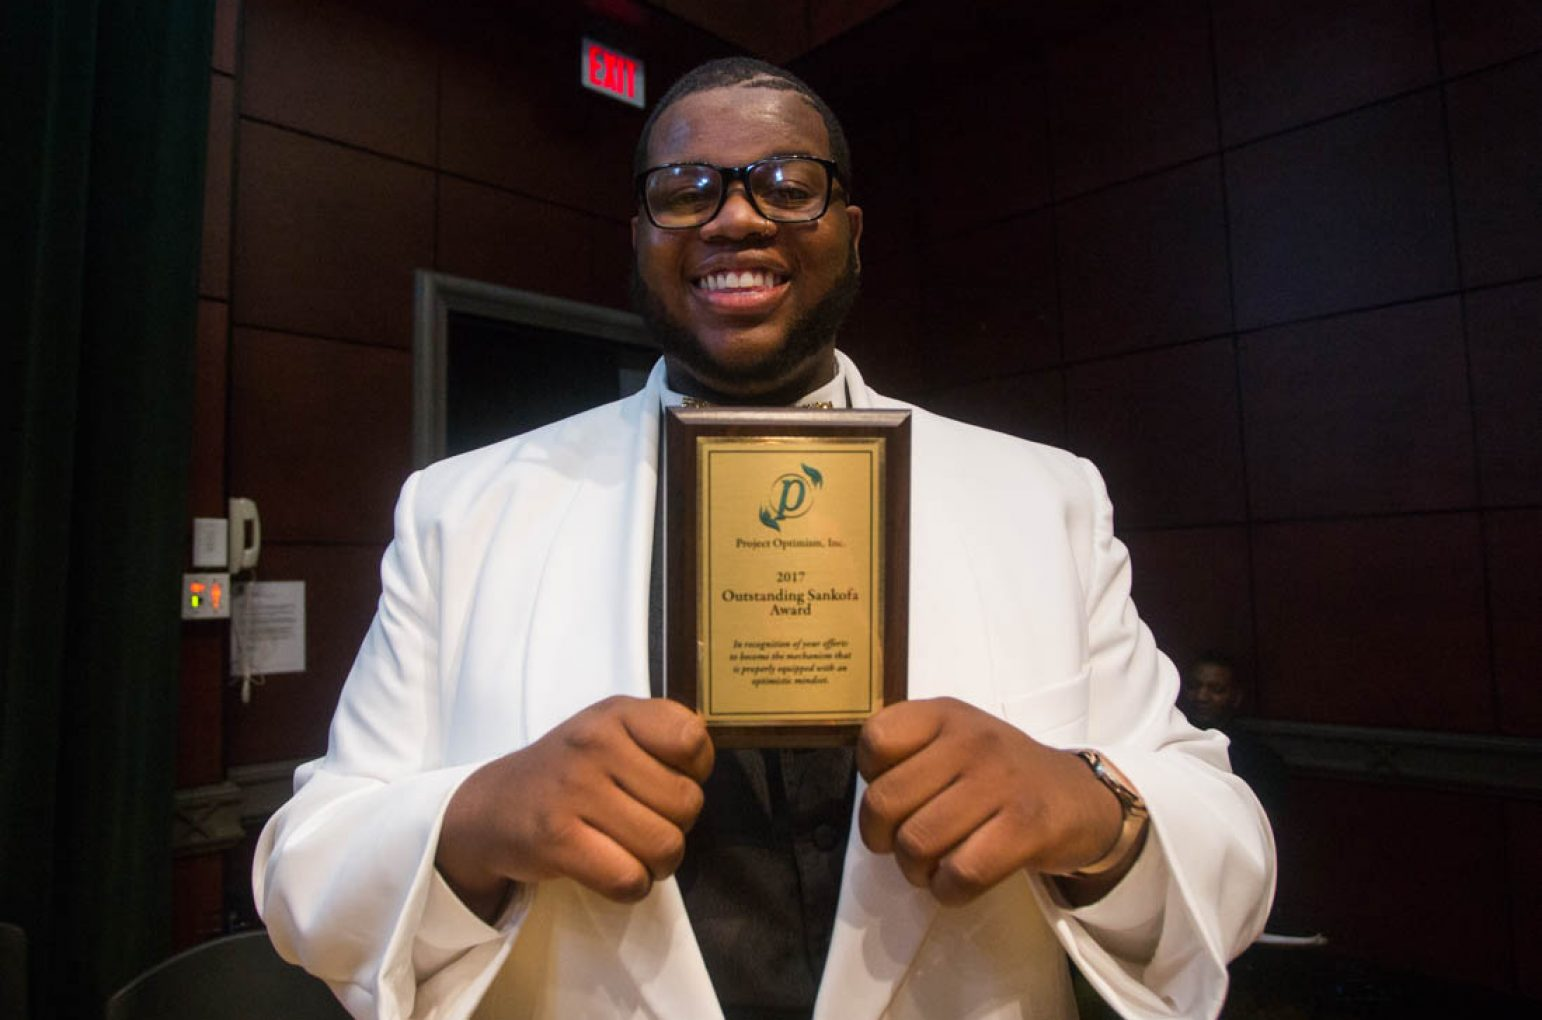 Sacramento State junior Donavin Butler was one of the three recipients of the 2017 Sankofa Awards at the first Black & White Gala on Sunday, which was hosted by Project Optimism. The program focuses on giving back to the community and mentoring at-risk youth. (Photo by Nicole Fowler)